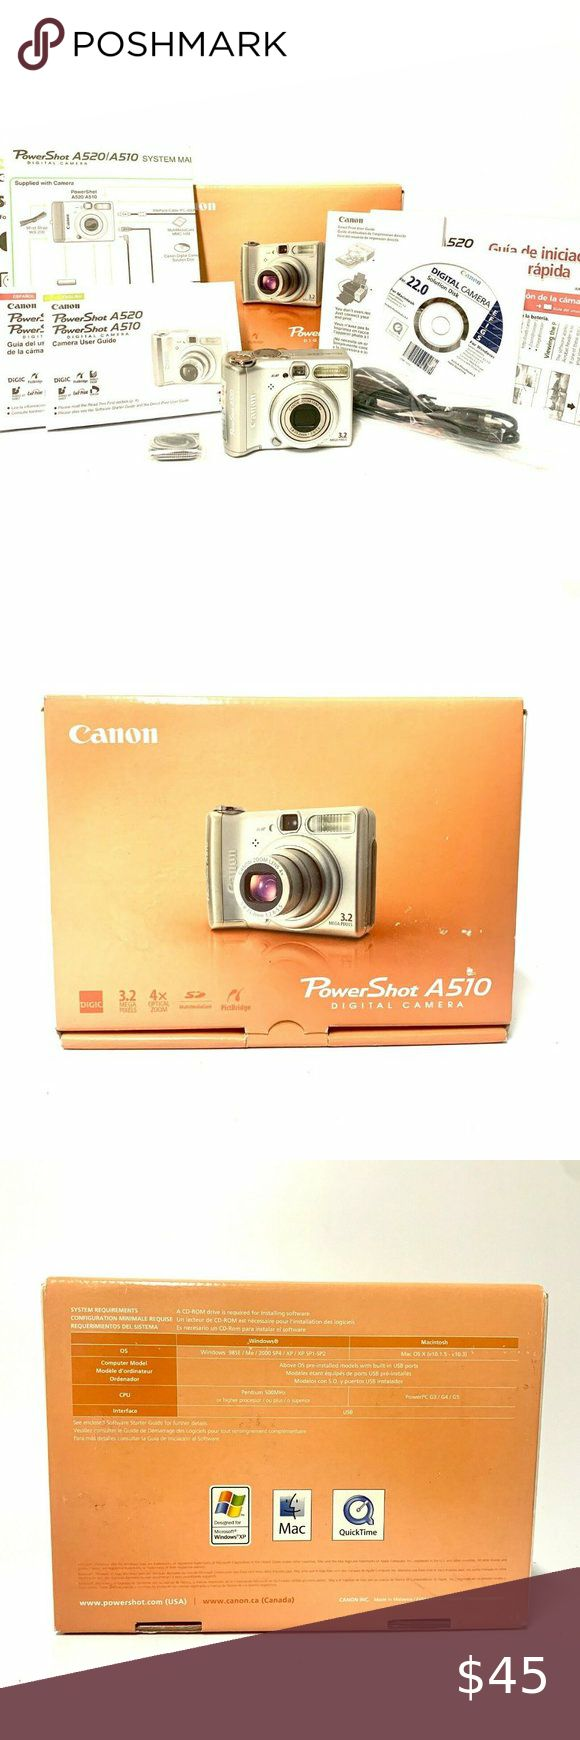 Canon Powershot A510 Digital Camera Iob W Manuals Thanks For Your Interest In This Canon Digital Camera Canon Powersh Canon Powershot Powershot Digital Camera